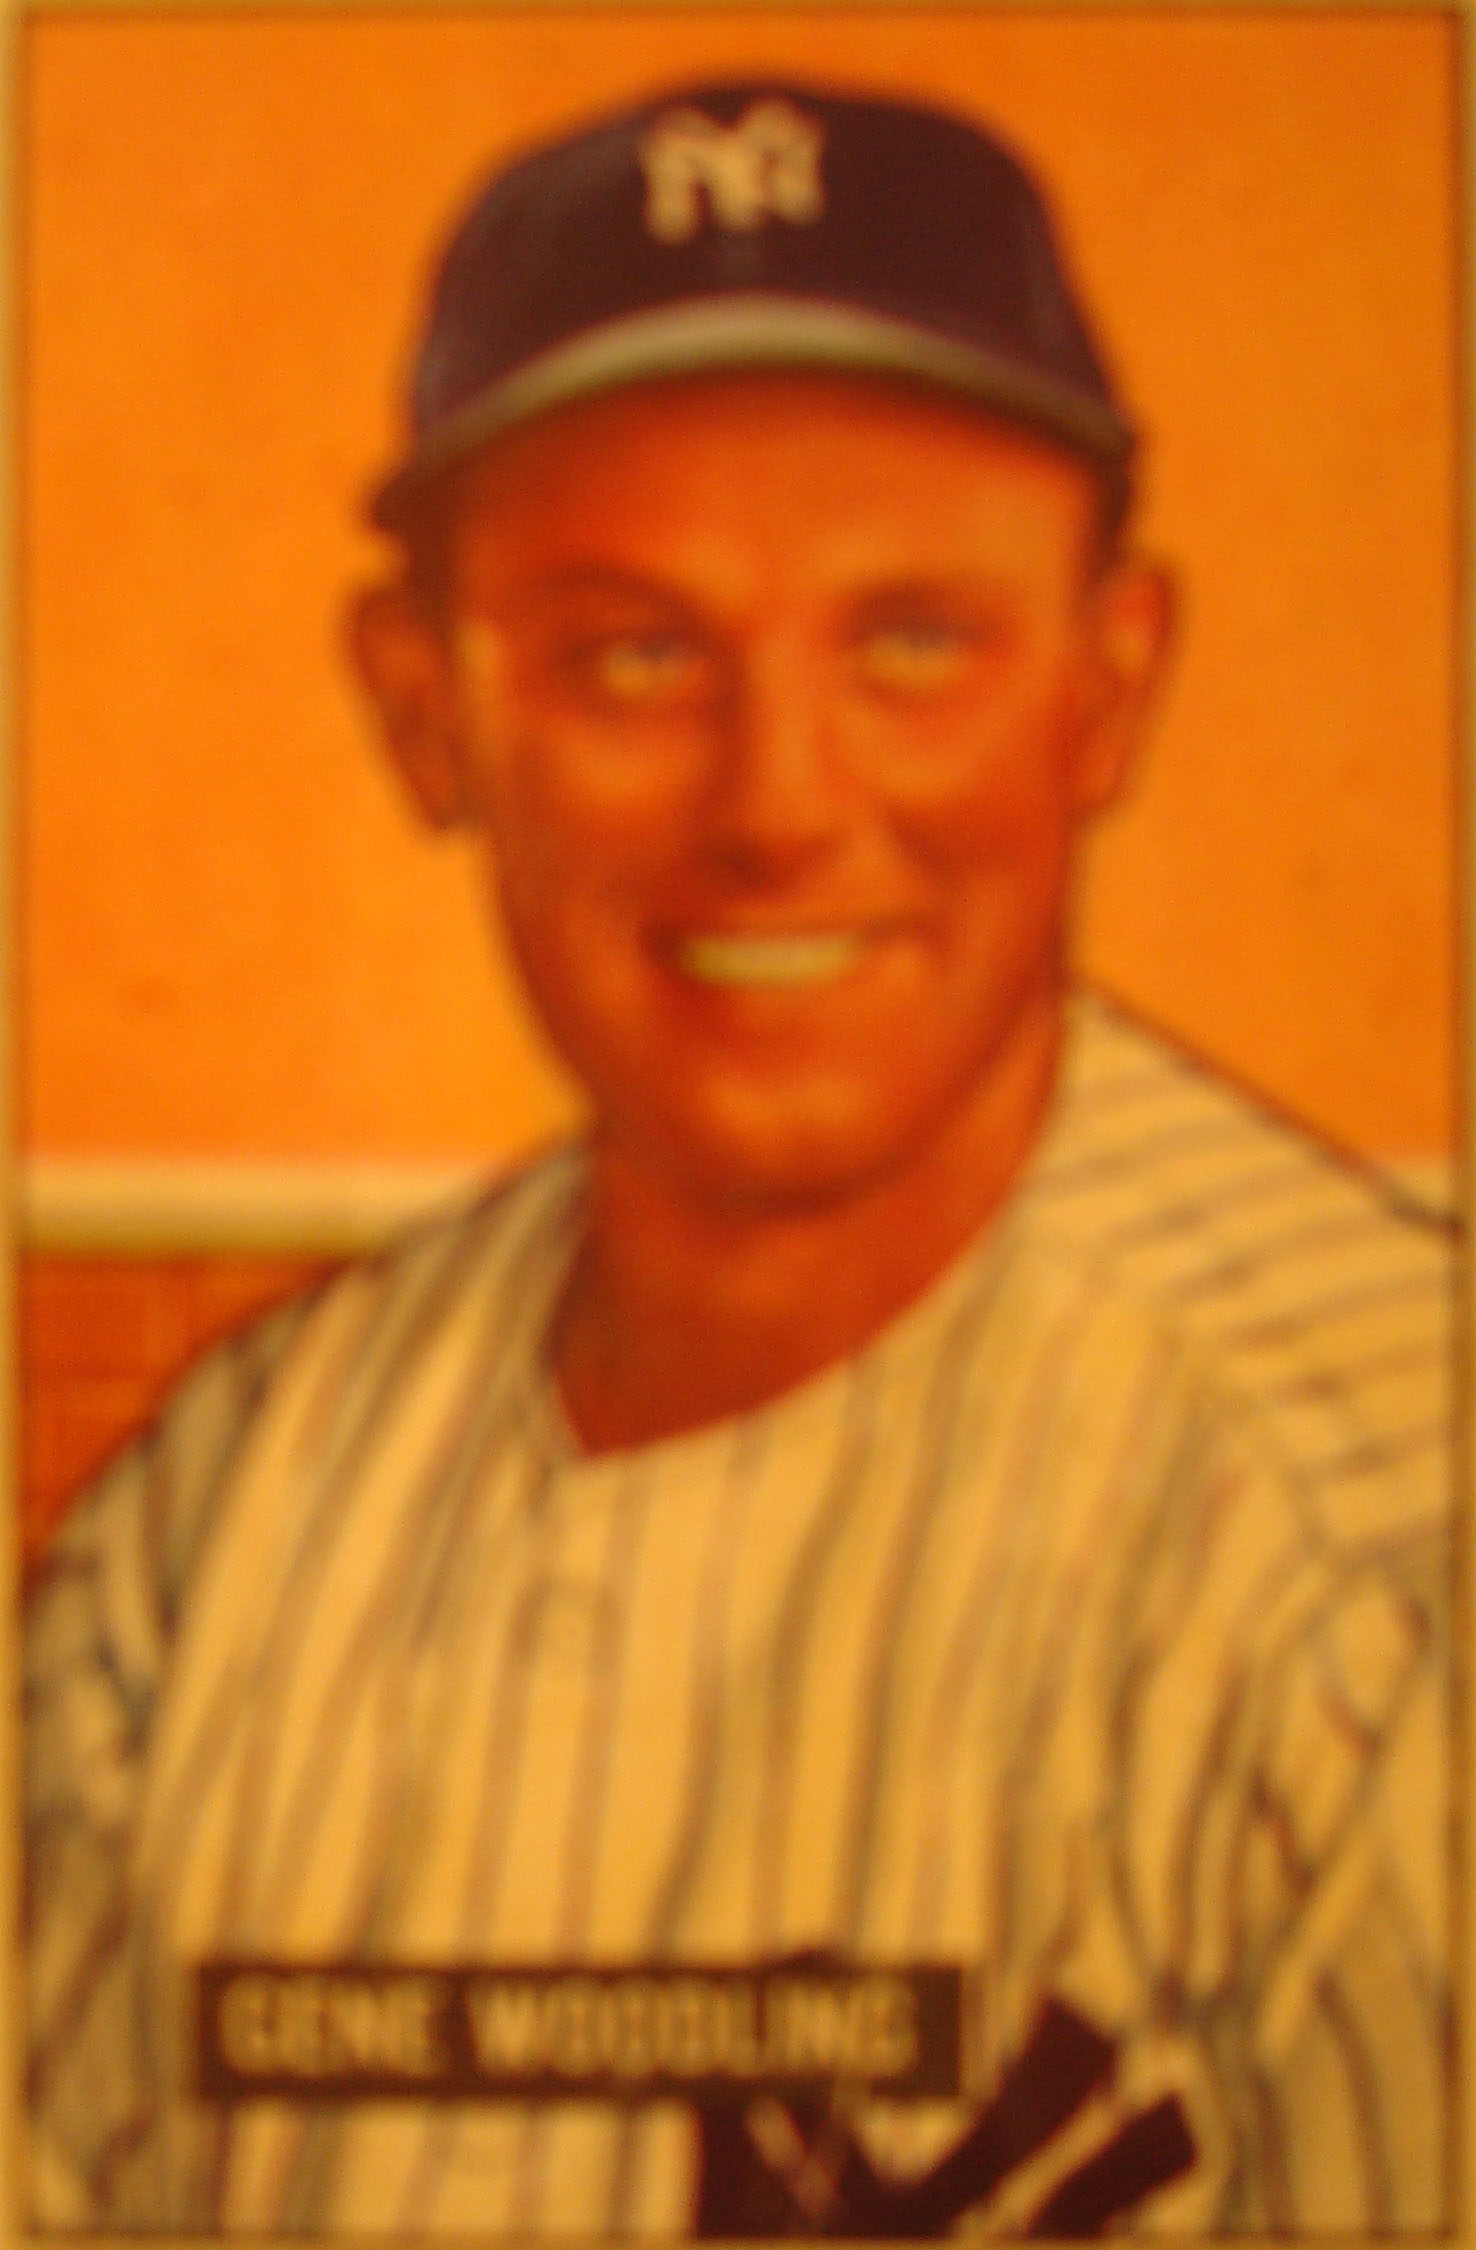 Original Baseball Card 1951 Bowman New York Yankees OF Gene Woodling